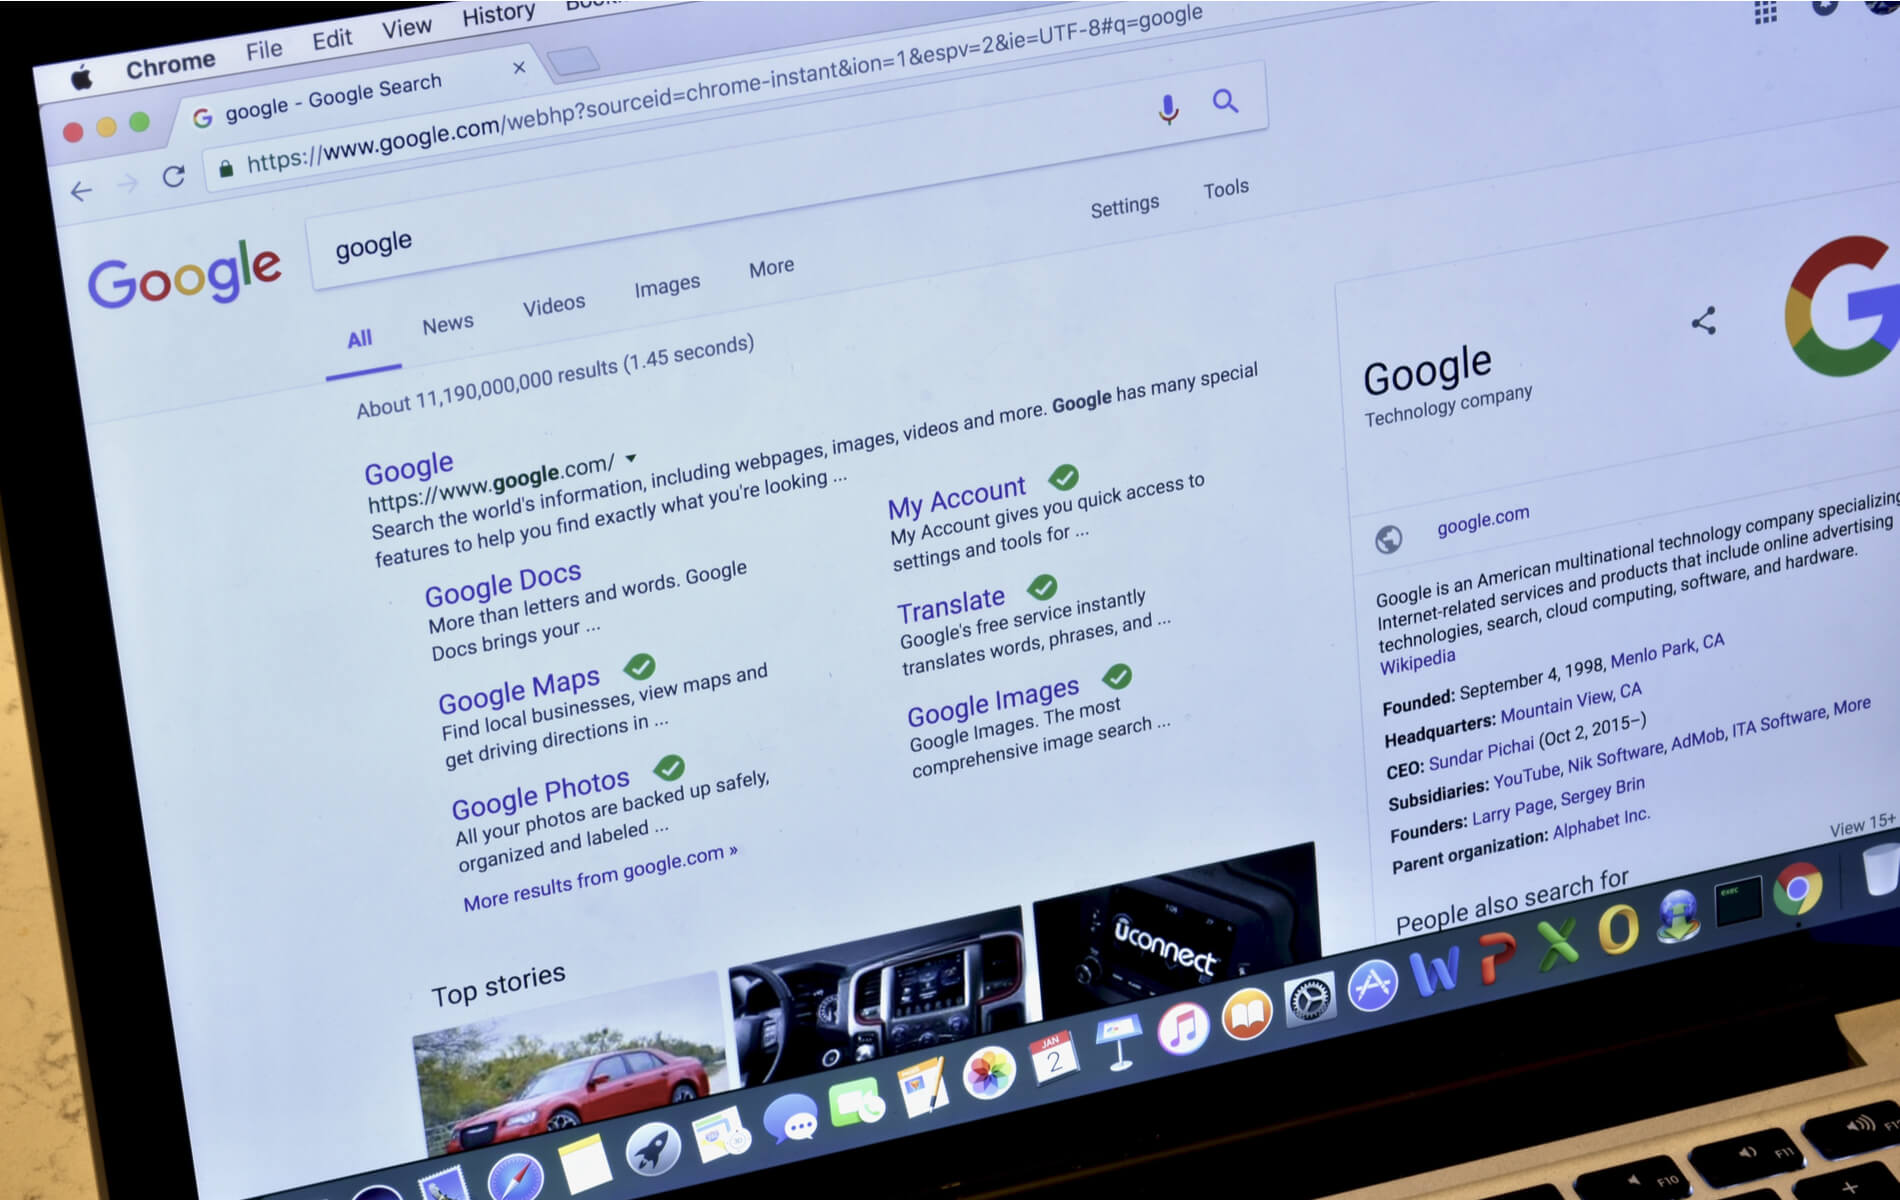 PPC - What to evaluate ahead of Google's Page Experience update